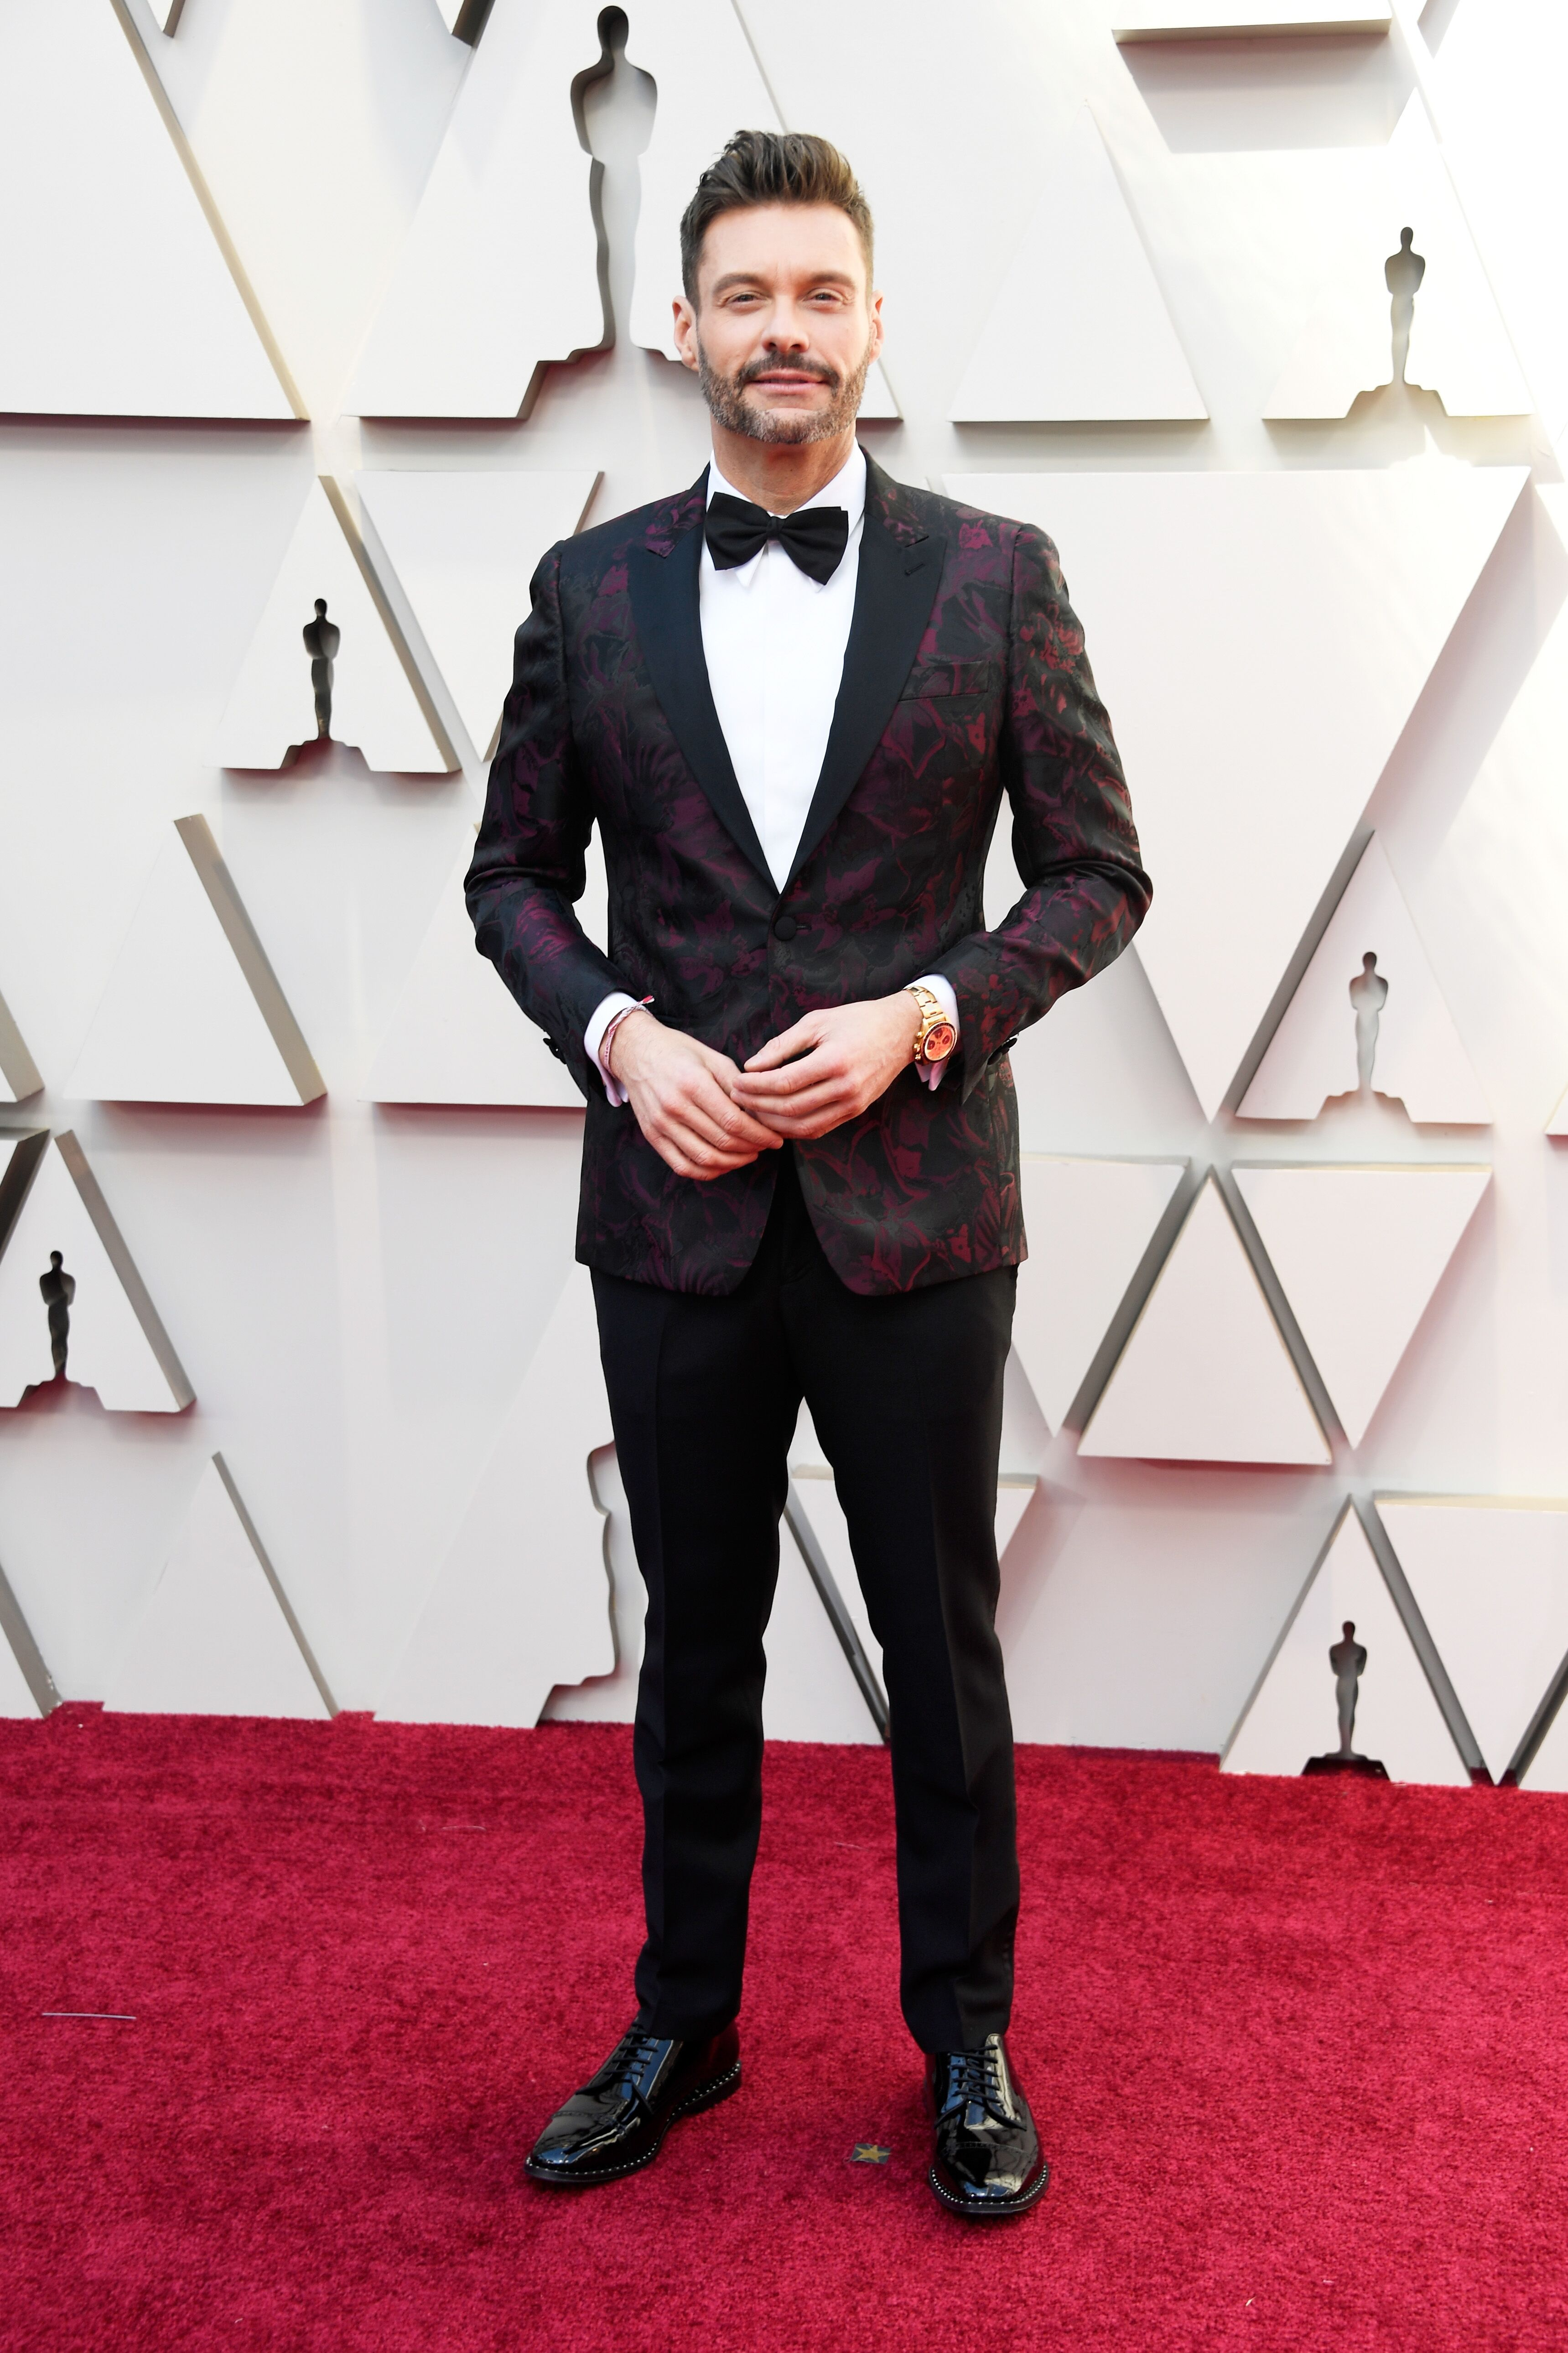 Ryan Seacrest at the 91st Annual Academy Awards.   Source: Getty Images